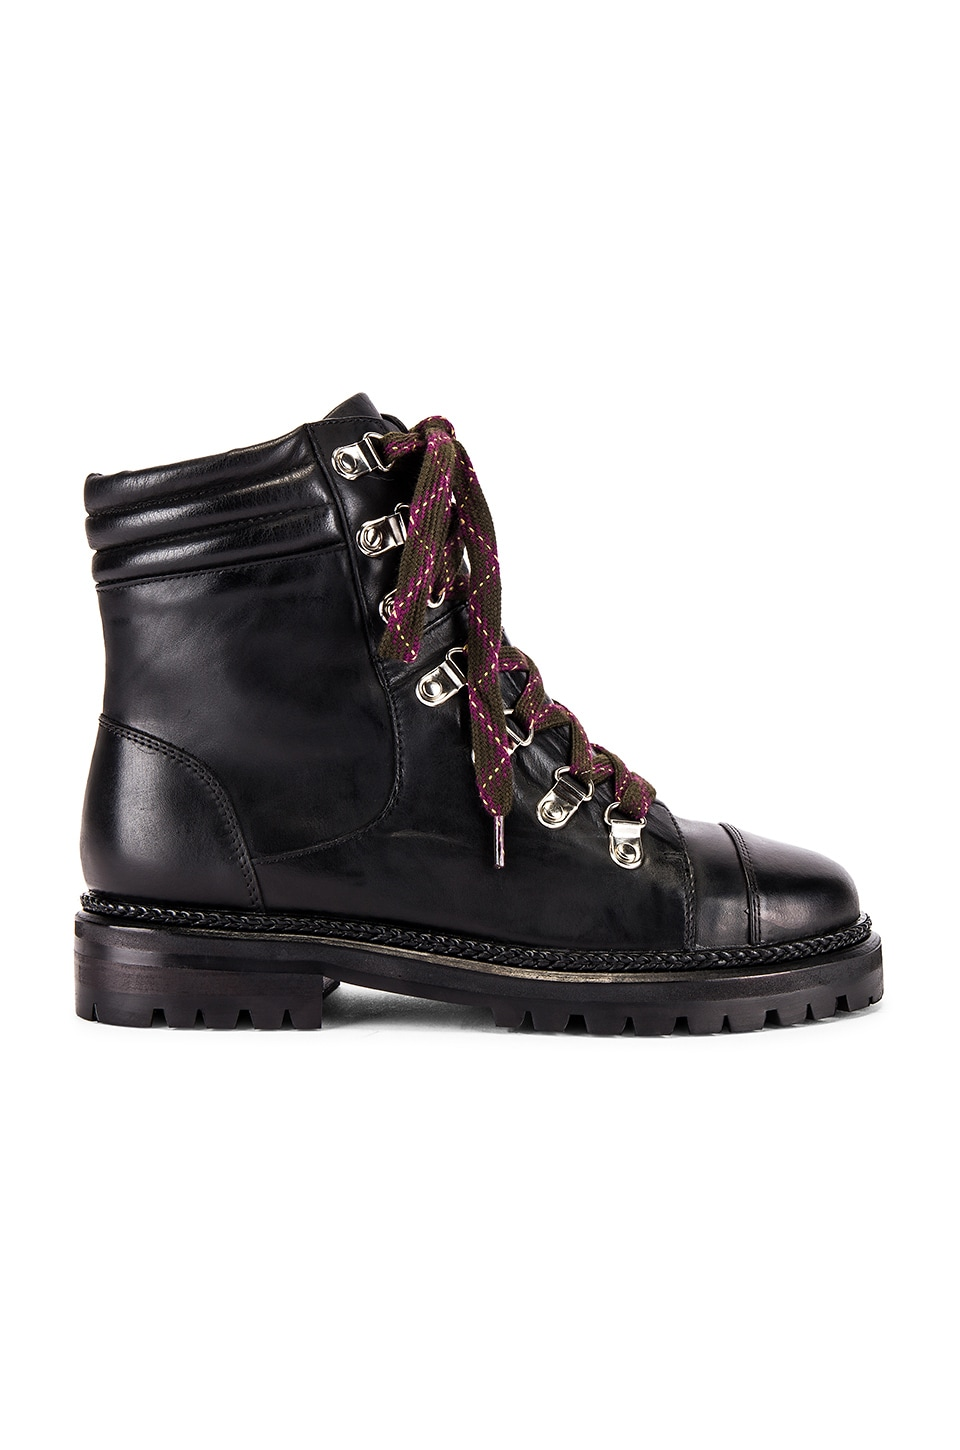 Alias Mae Pippa Boot in Black Burnished